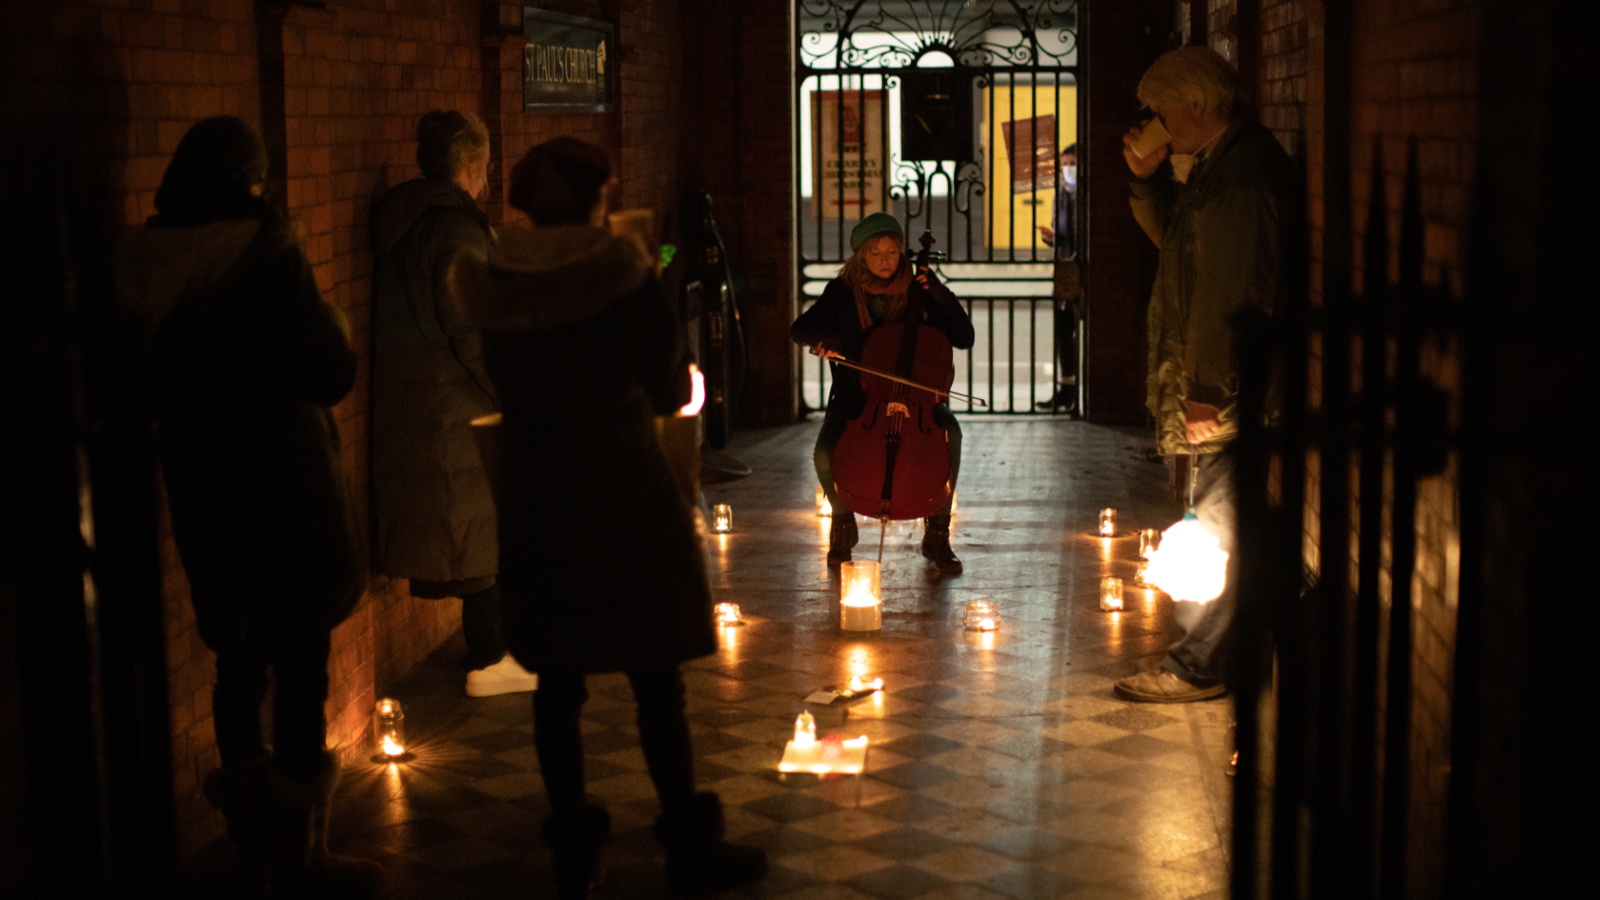 We are in a dark alley with red brick walls and black and white tiles. A young woman sits wrapped in winter clothes playing the cello surrounded by candles which glisten on the tiled floor. A small socially distanced audience watch her play. At the other end of the alley is an iron gate and a figure can be seen watching through the gate